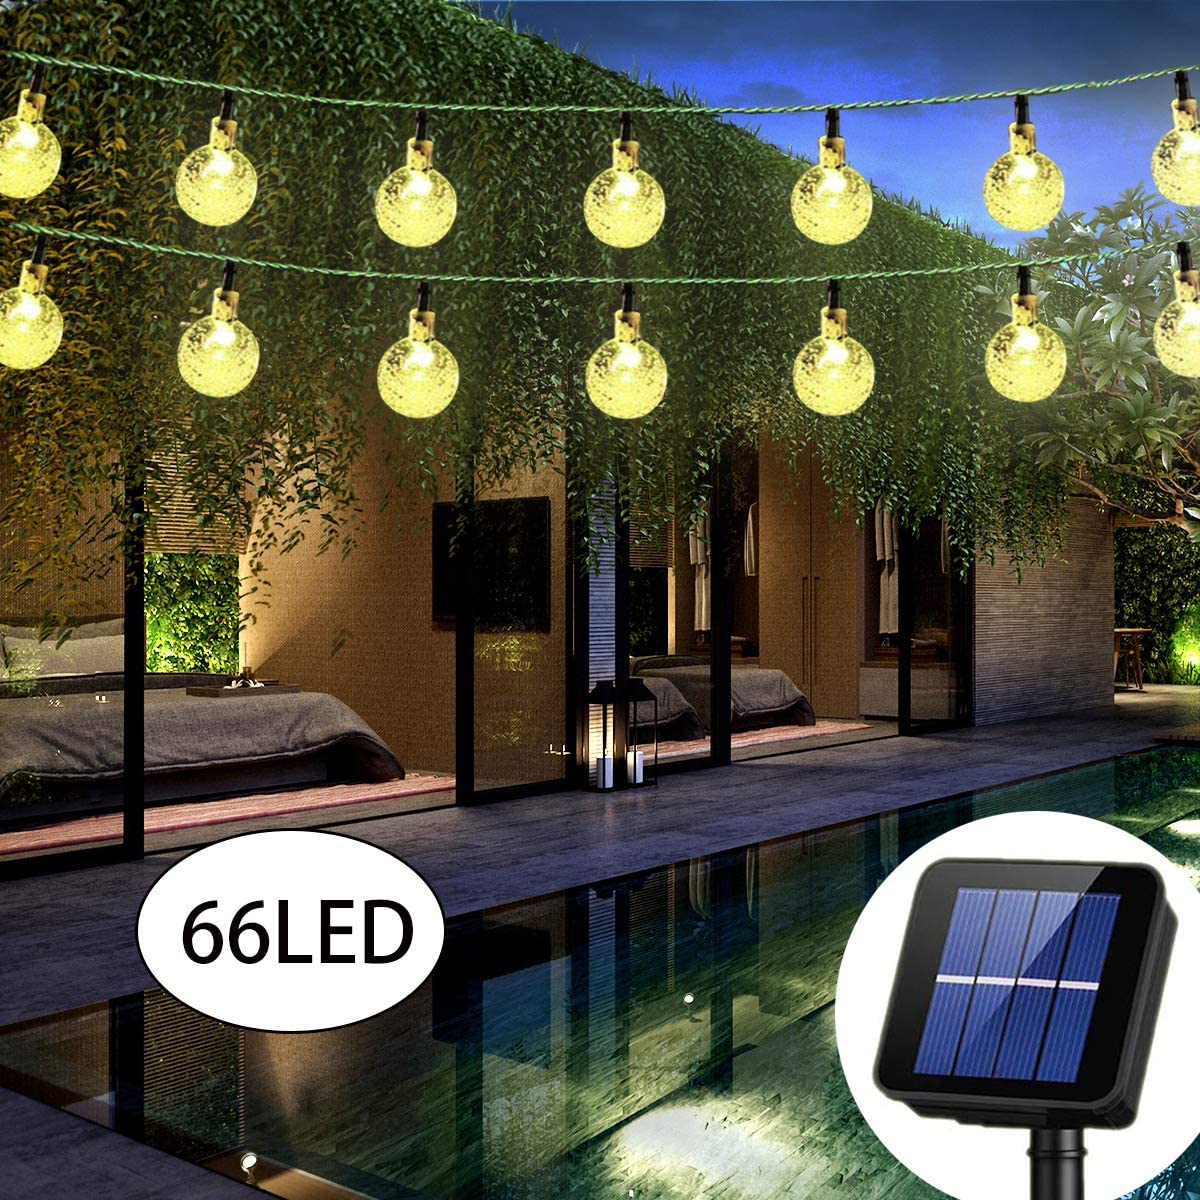 Irecey Solar String Lights Globe 38 Feet 66 Crystal Balls Waterproof LED Fairy Lights 8 Modes Outdoor Starry Lights Solar Powered Lights for Garden Yard Home Party Wedding Decoration (Warm White)